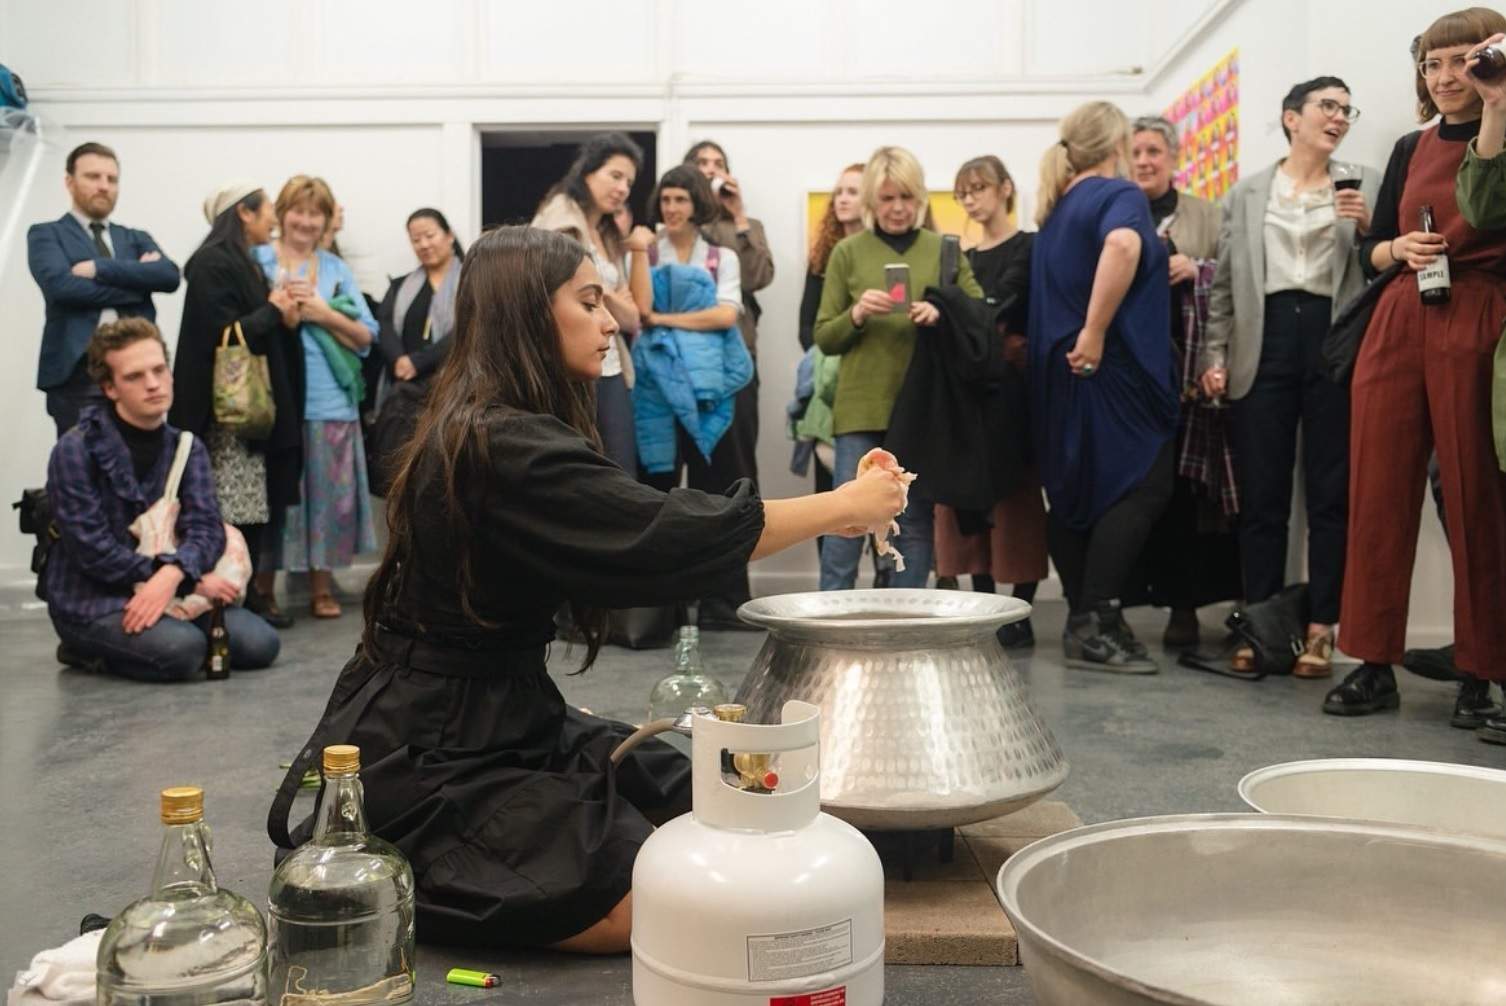 Justine Youssef  performing 'an other's Wurud' at BLINDSIDE Gallery in 2018. Photo: Keelan O Hehir | Courtesy the artist